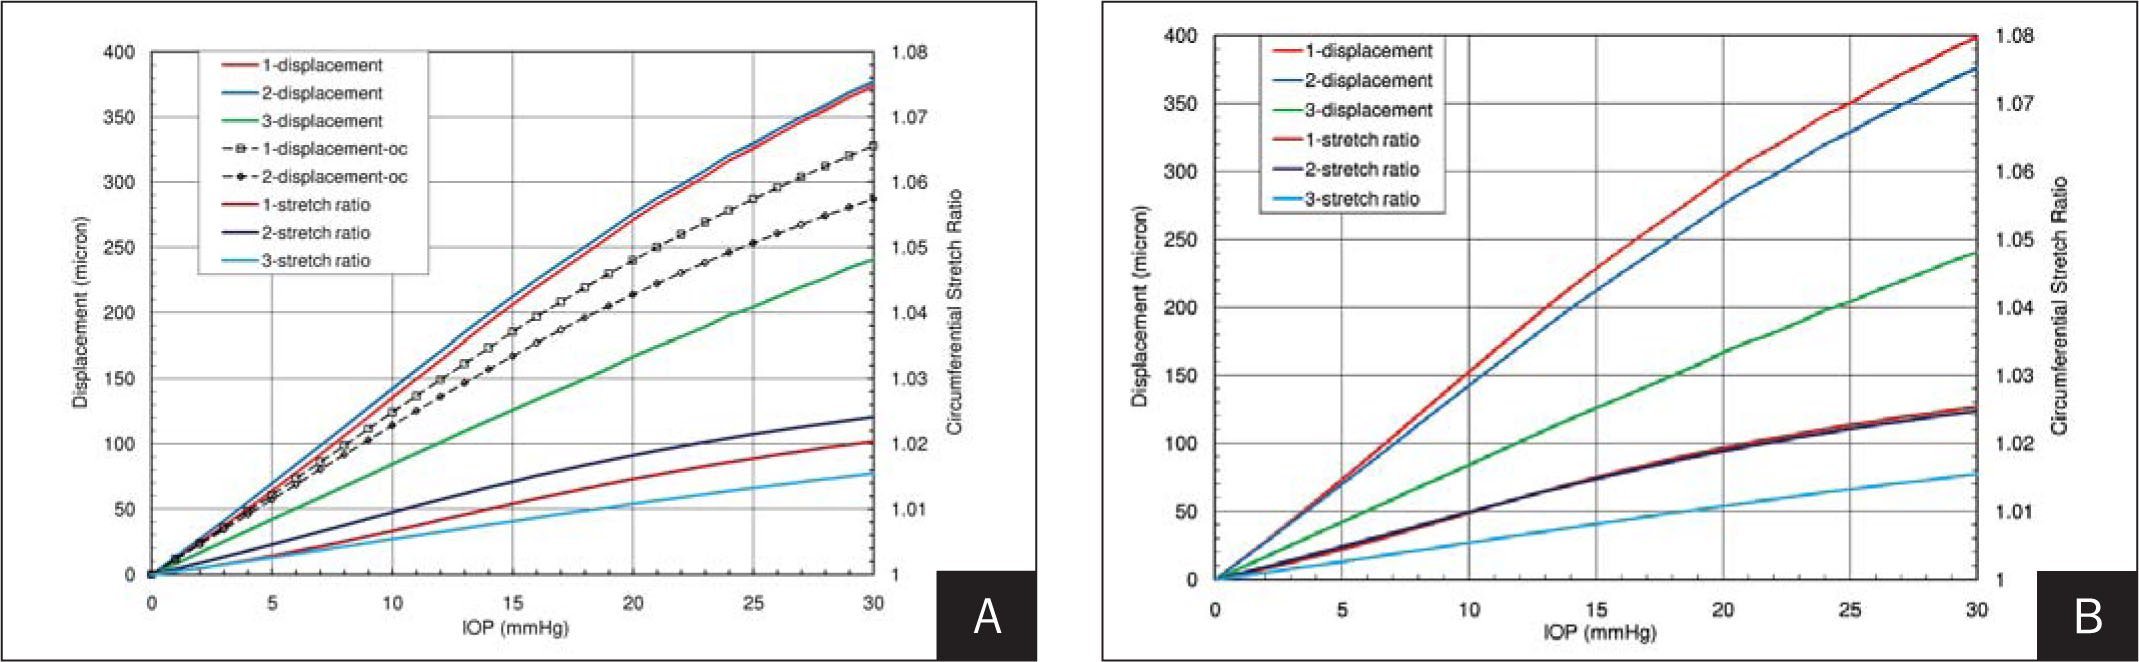 Displacement and Stretch Ratio as a Function of Intraocular Pressure (IOP) at the Center, Paracenter, and Limbus in A) a Preoperative LASIK Low-Stiffness (W) Whole-Eye Model and Cornea-Only (fixed Limbus) Model, and B) a Postoperative LASIK 6D-W Whole-Eye Model. Increasing IOP Favors Paracentral Corneal Displacement in Preoperative Whole-Eye Models. Predominant Displacements Are in the Central Cornea in Unoperated Cornea only when the Cornea Is Modeled Without Consideration of Extracorneal Structures. In a Lower Stiffness Cornea, 6.00-D Myopic LASIK Causes a Shift in the Region of Predominant Displacement to the Corneal Center.